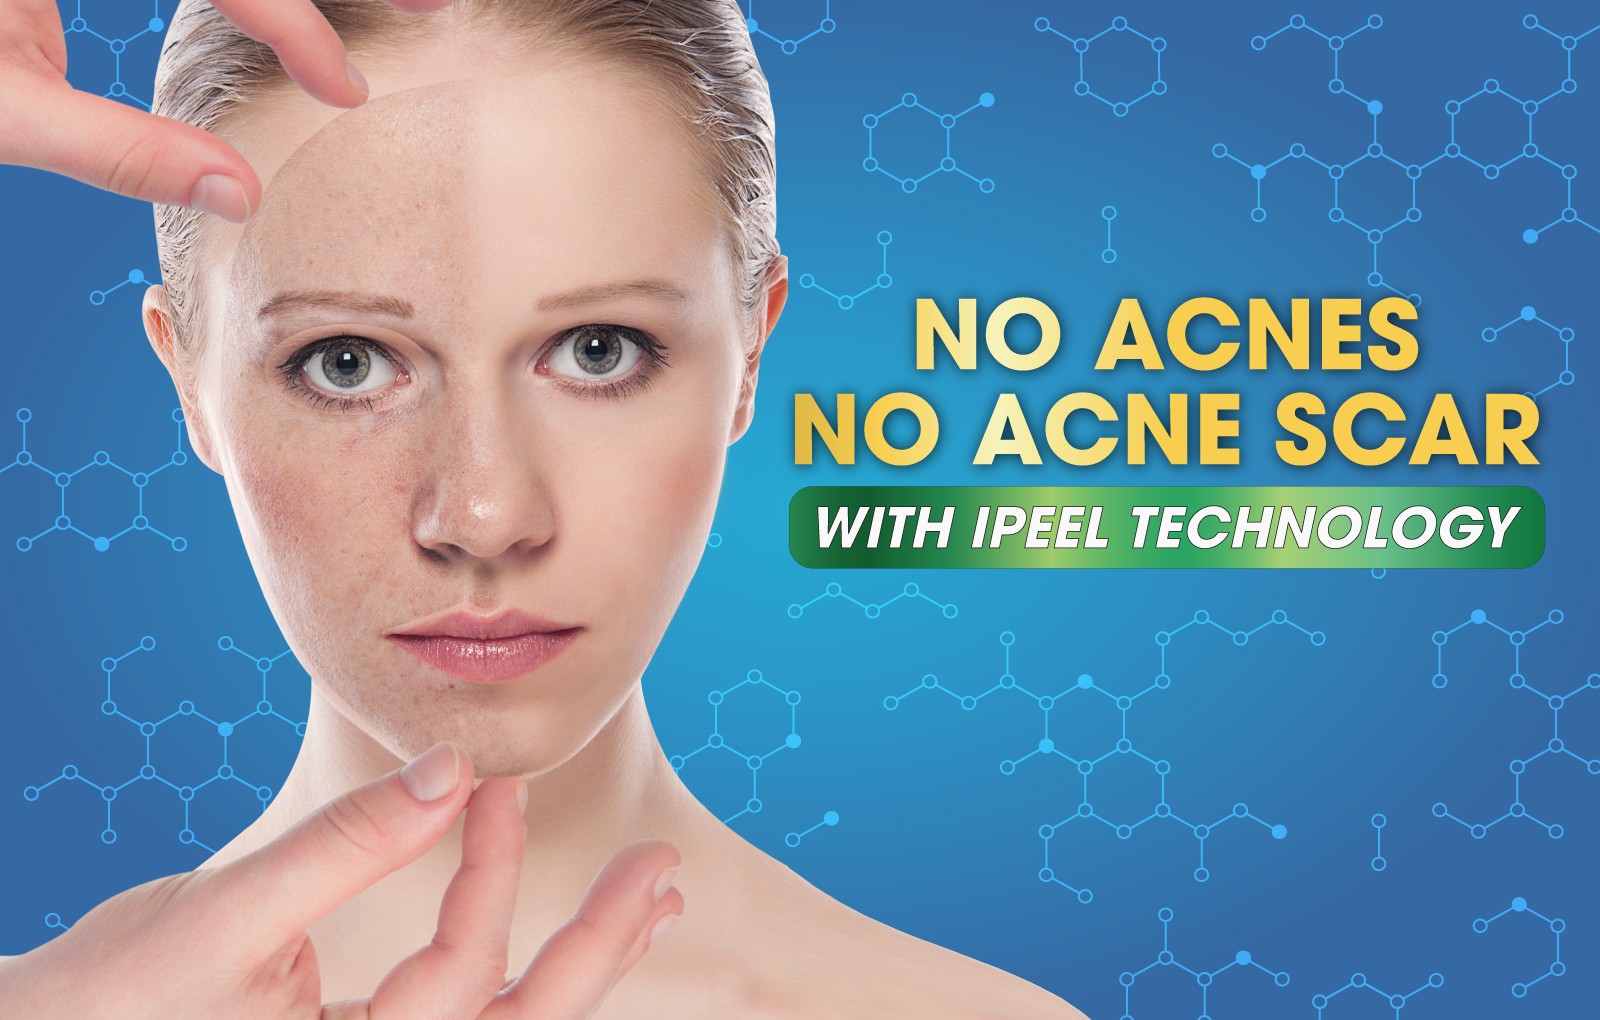 ACNE TREATMENT BY PEELING TECHNOLOGY